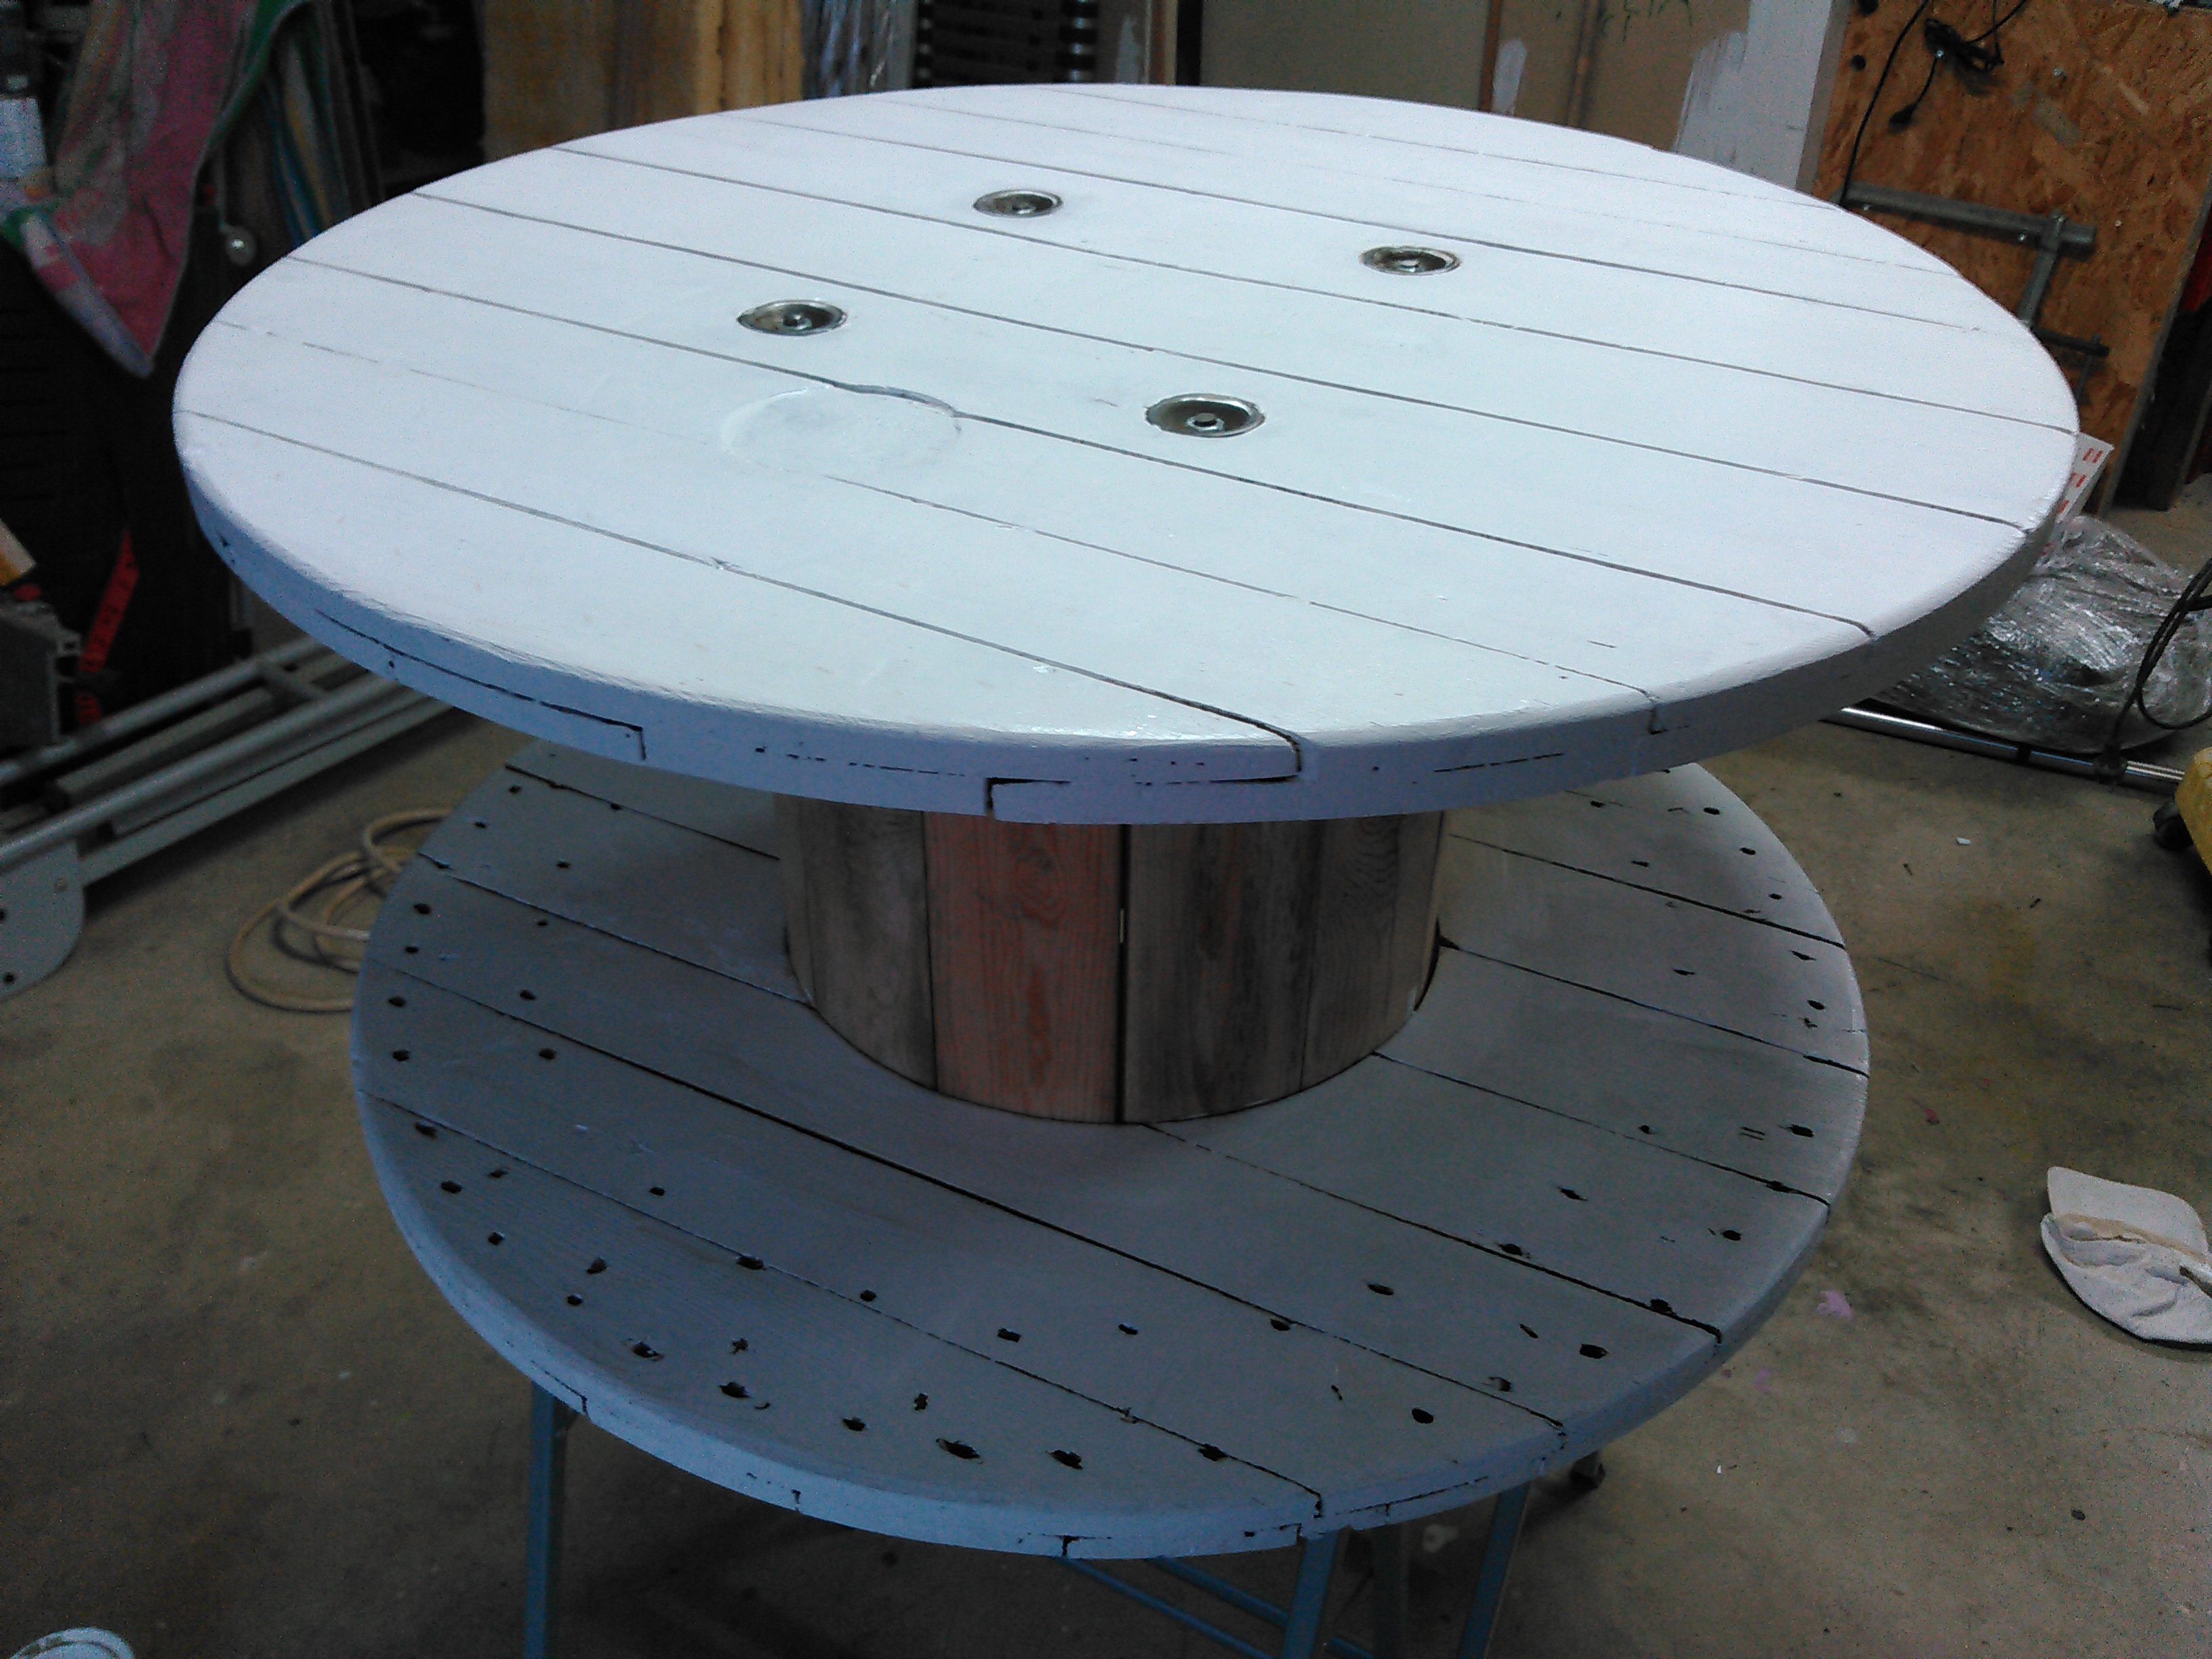 Table basse touret sebricole - Comment faire une table en bois ...